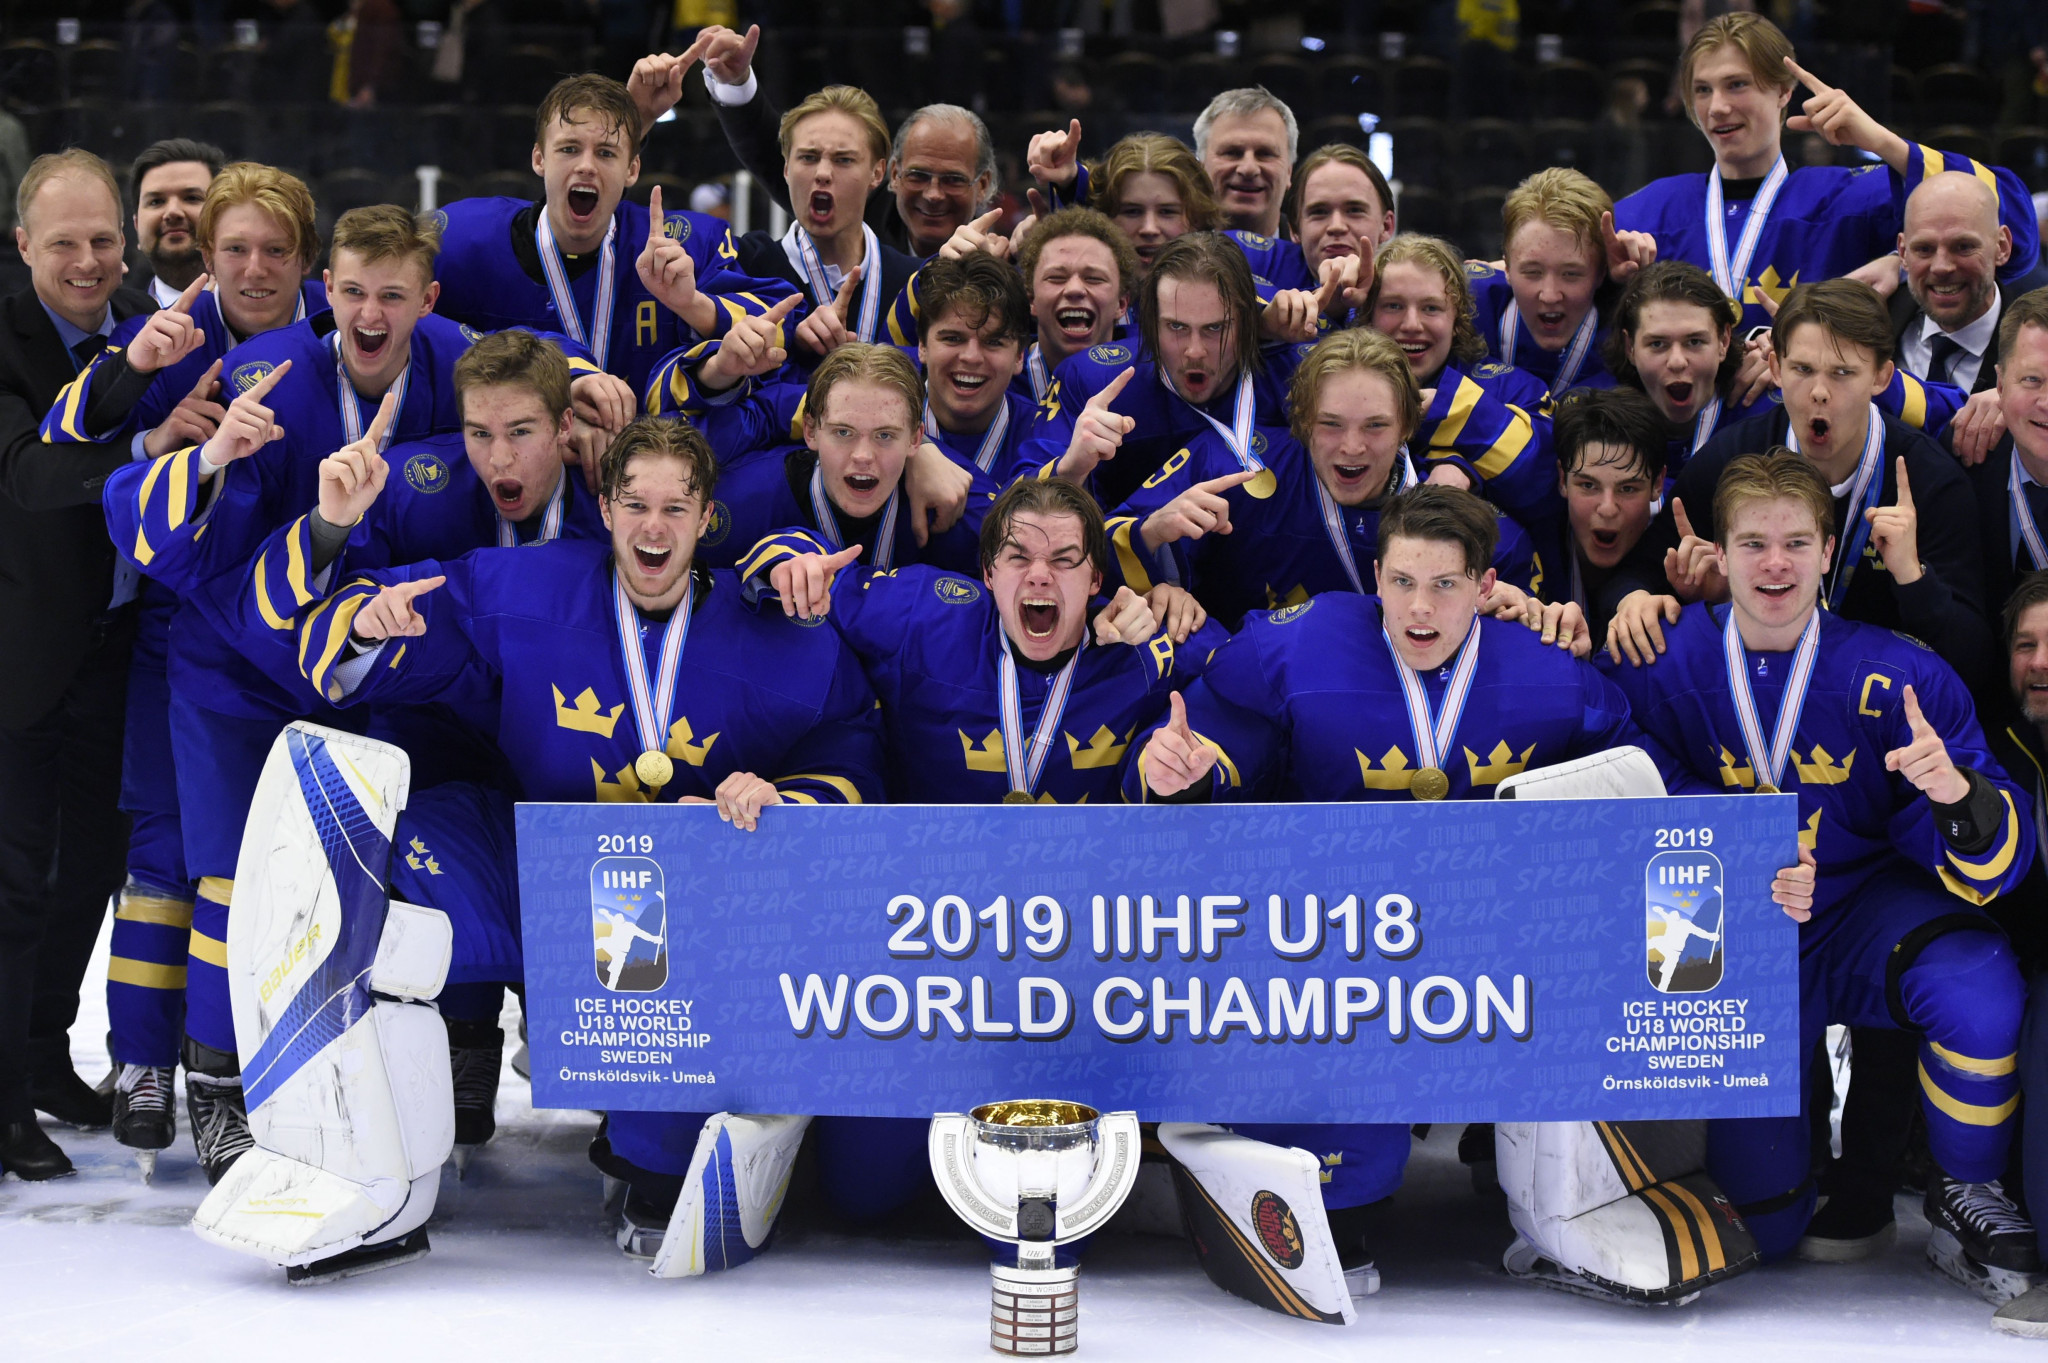 Hosts Sweden triumphed at the 2019 IIHF Under-18 World Championship ©Getty Images